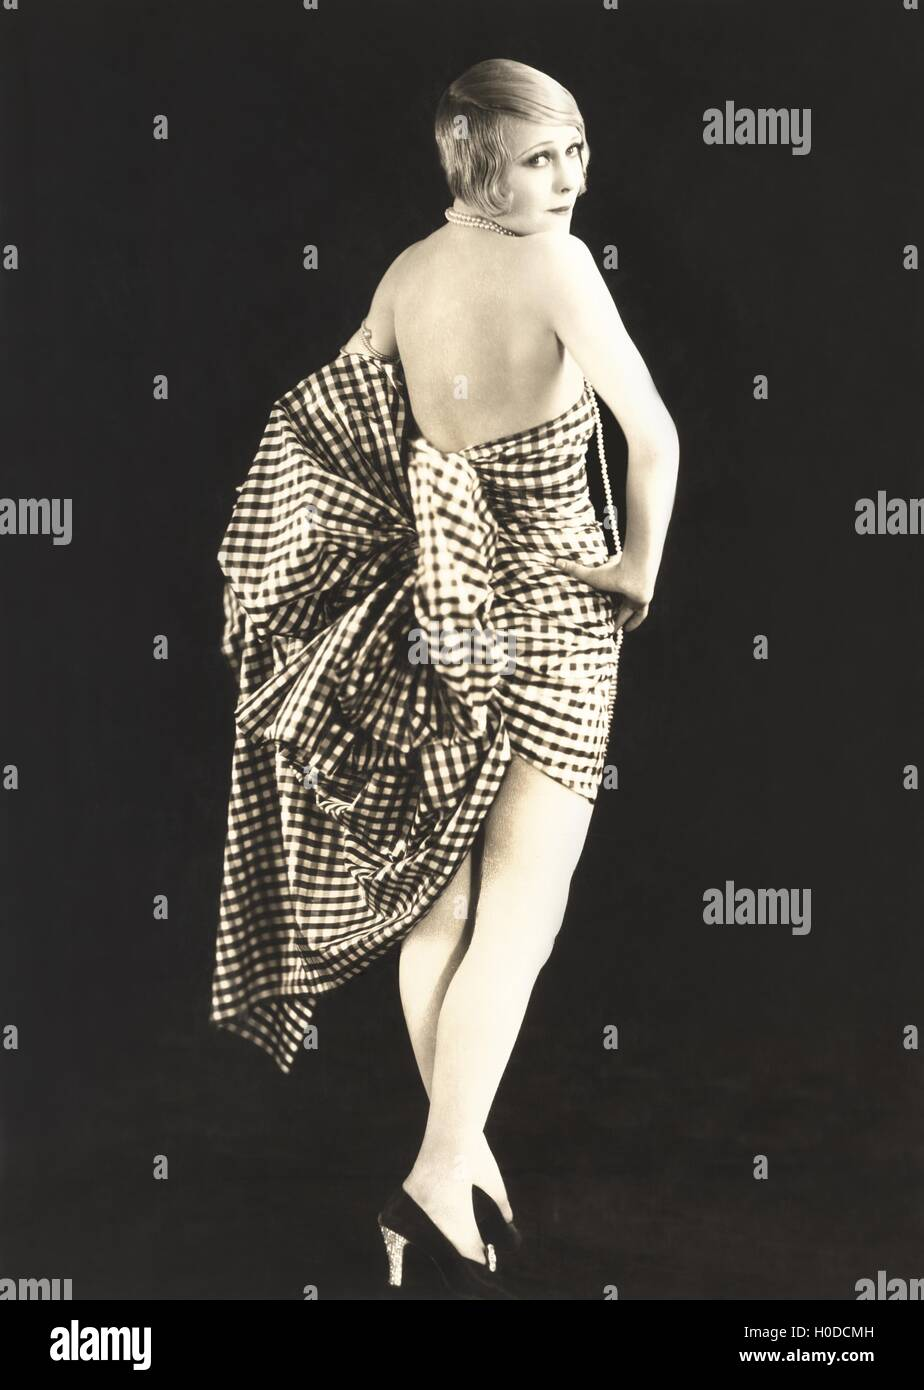 Woman dressed in gingham - Stock Image